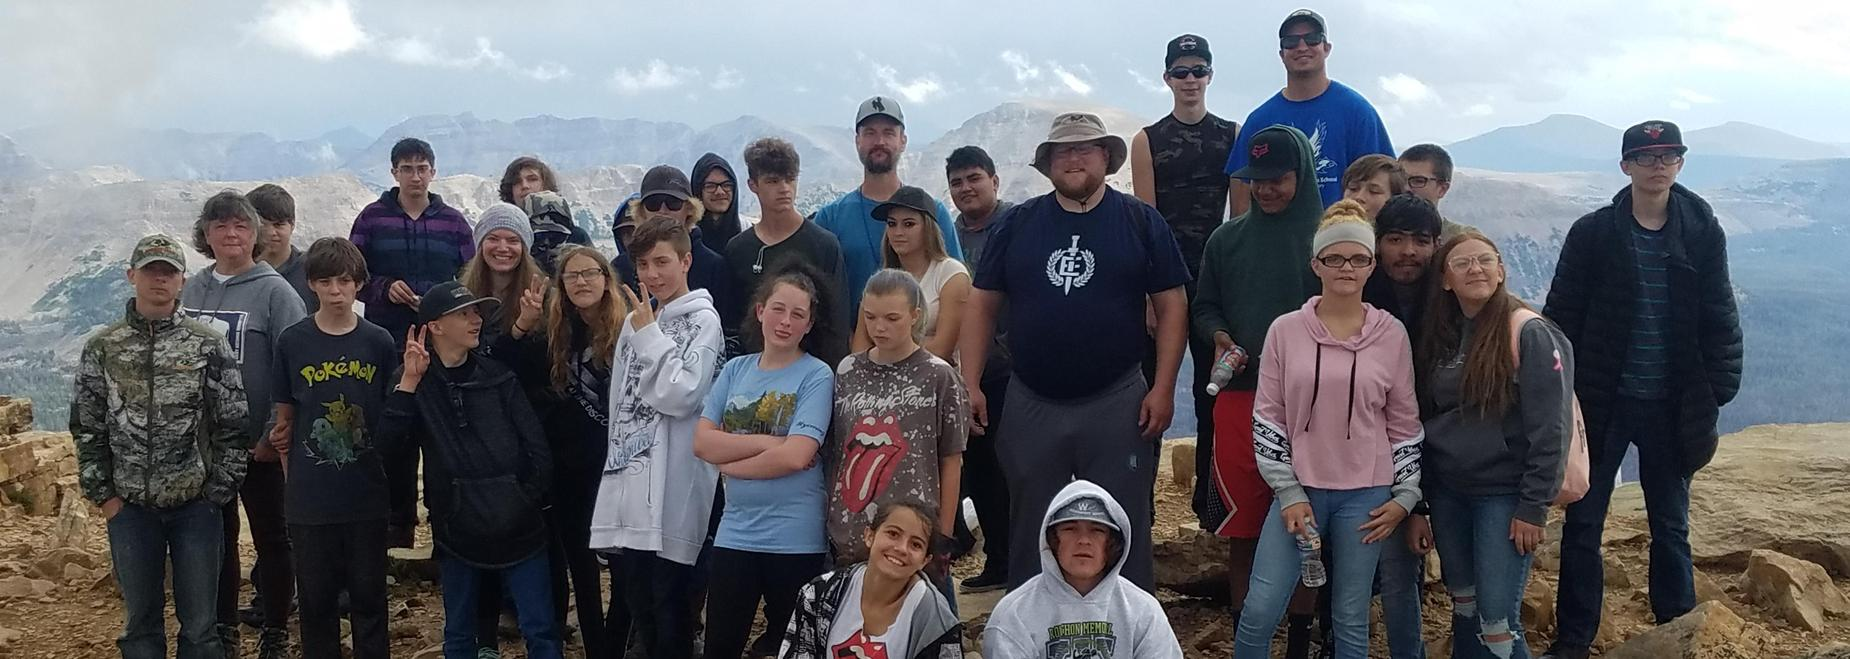 2019-20 Bald Mountain Hike